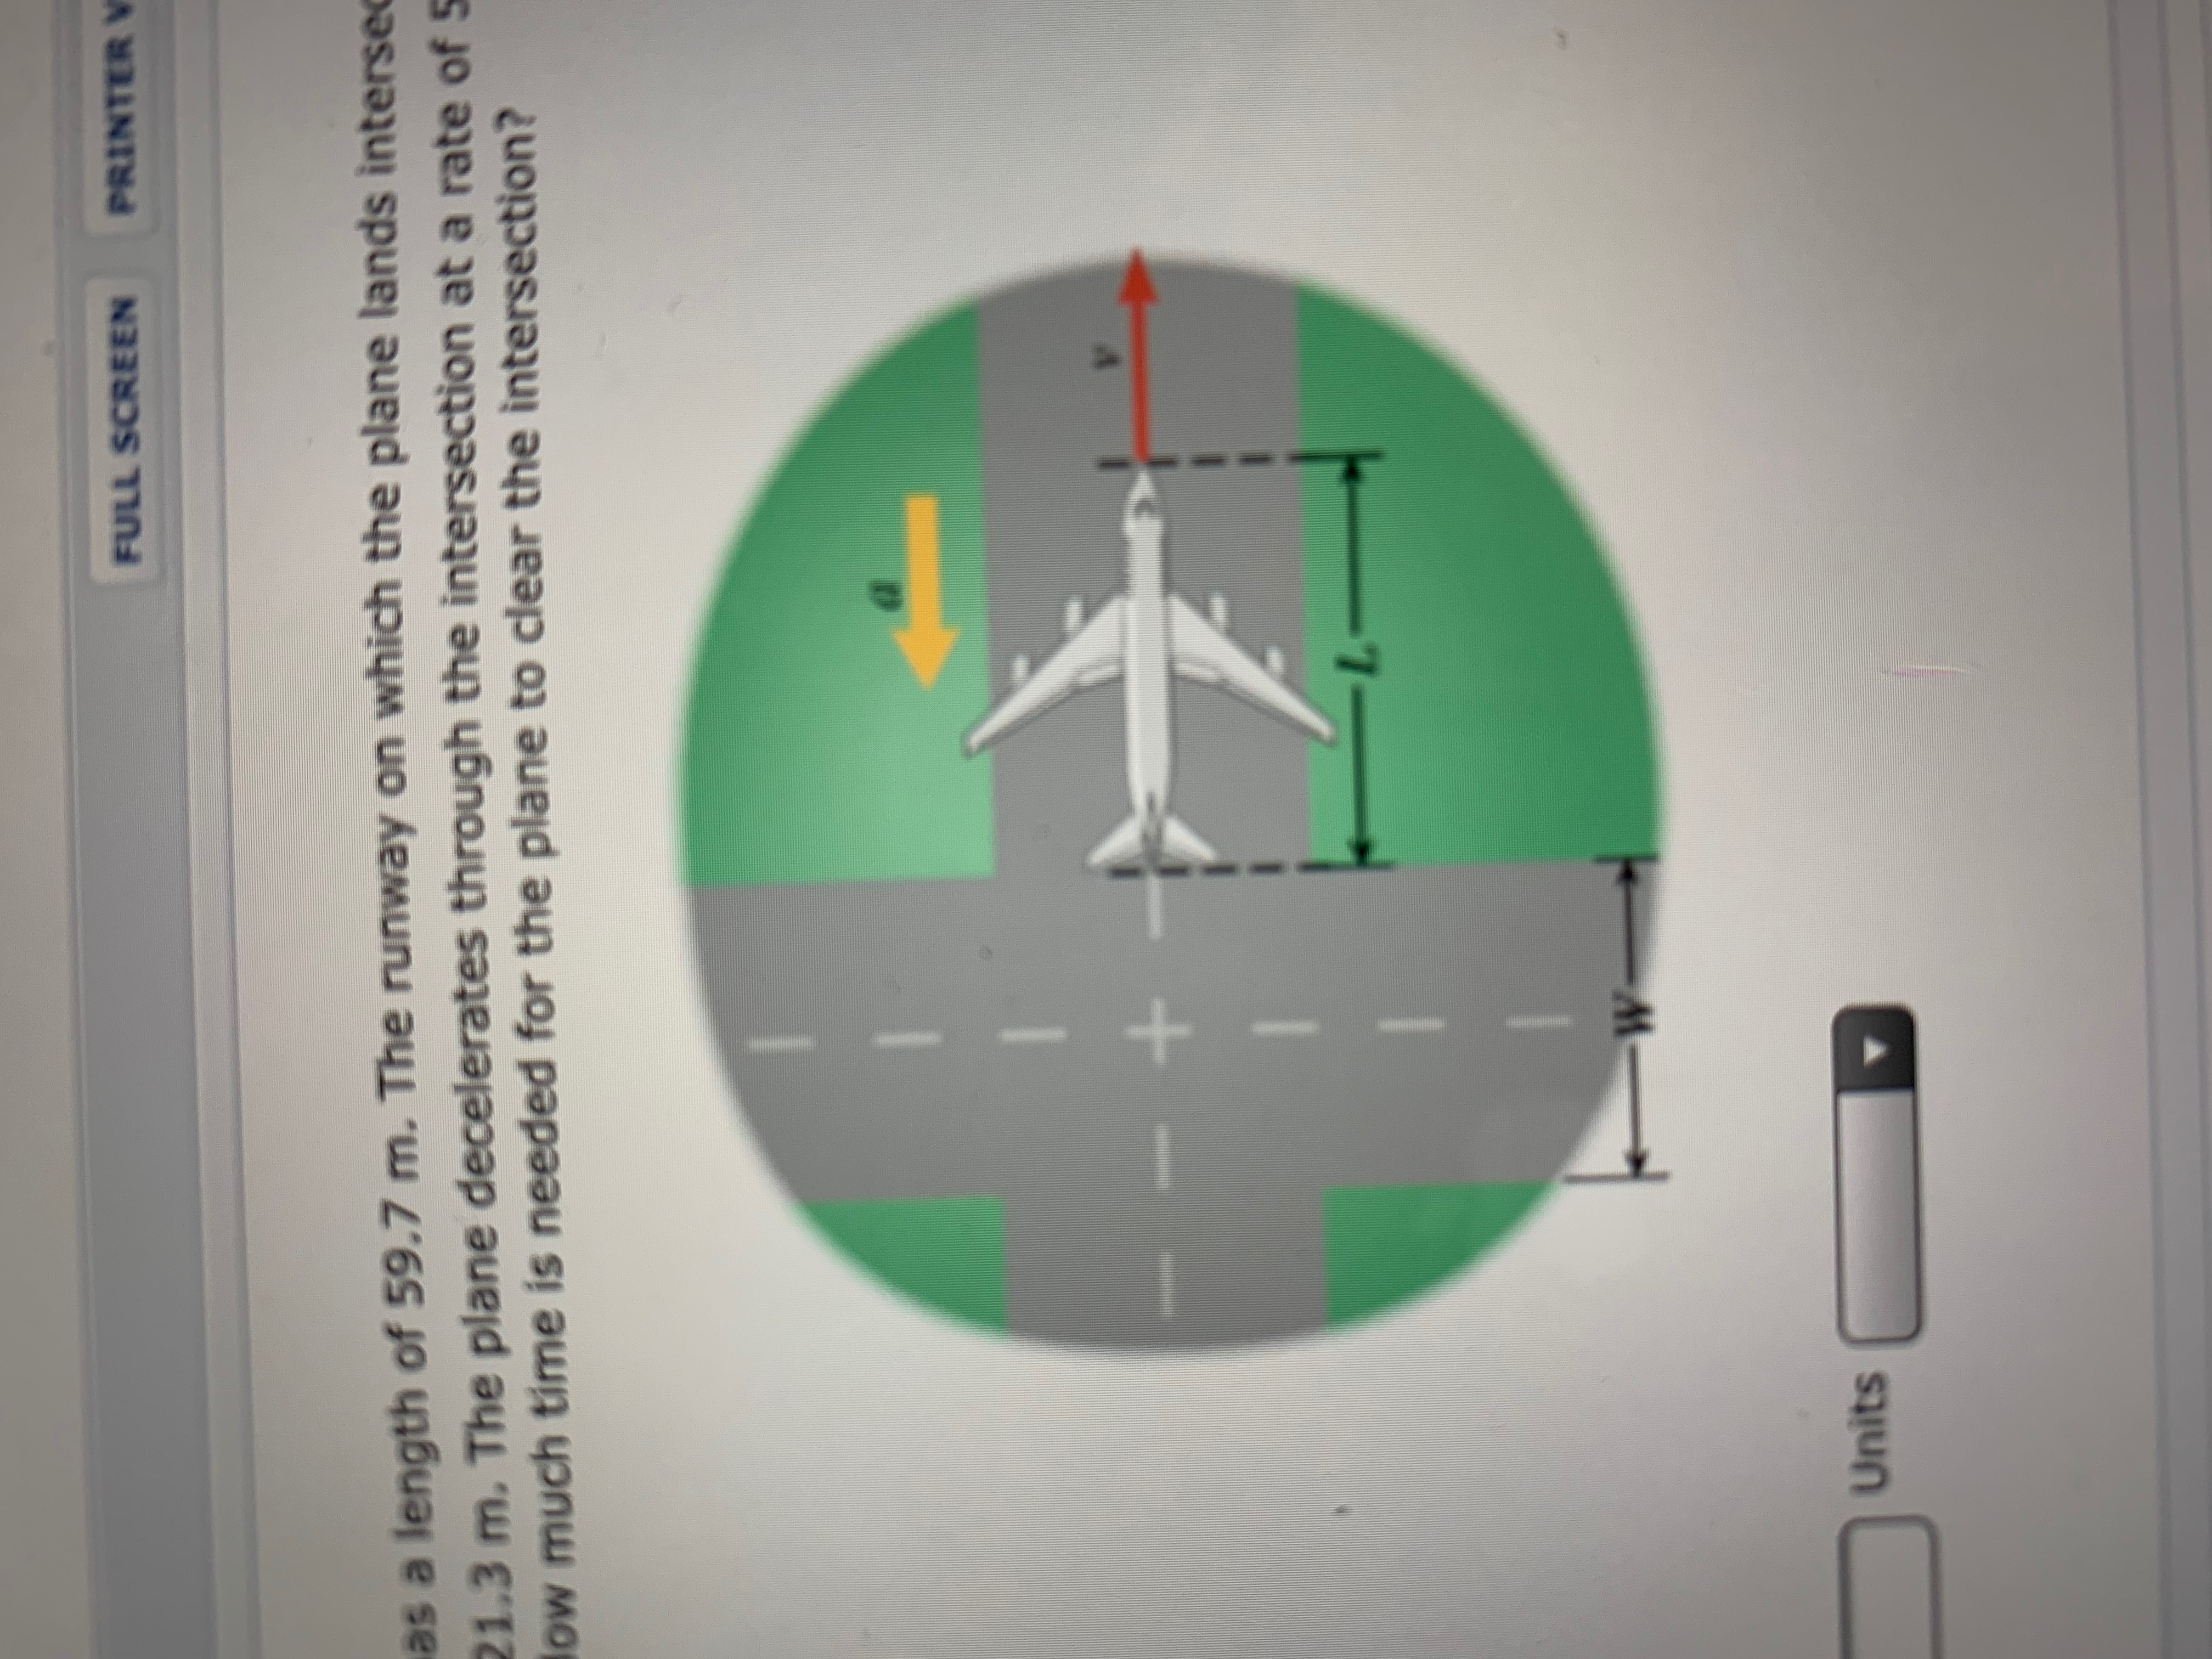 PRINTER V FULL SCREEN as a length of 59.7 m. The runway on which the plane lands intersec 21.3 m. The plane decelerates through the intersection at a rate of 5 low much time is needed for the plane to clear the intersection? W- Units